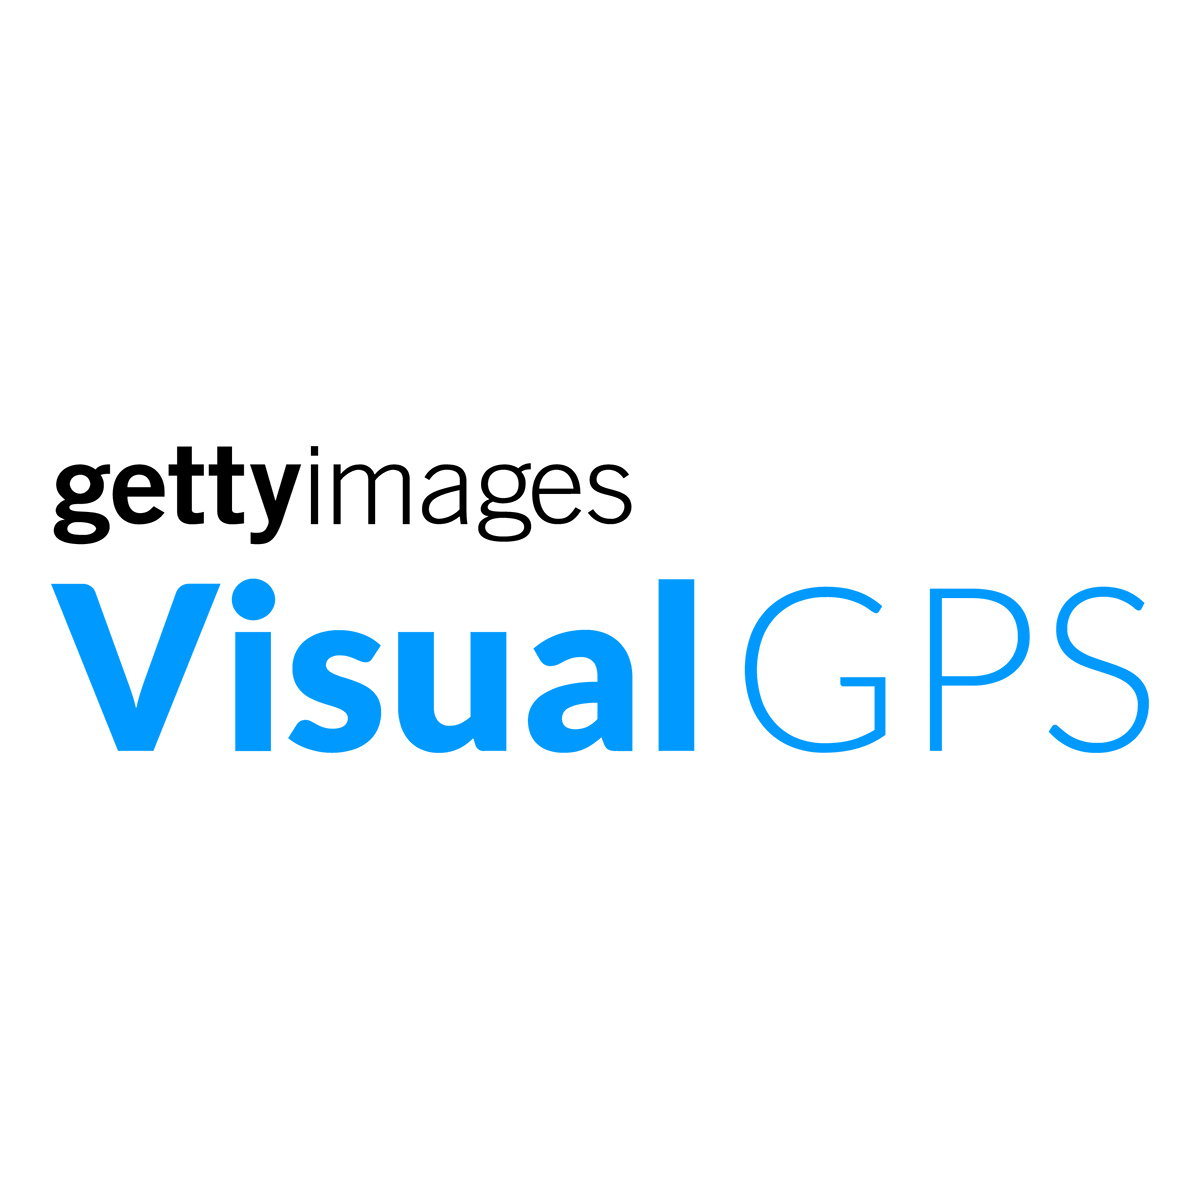 Getty Images Launches Visual GPS